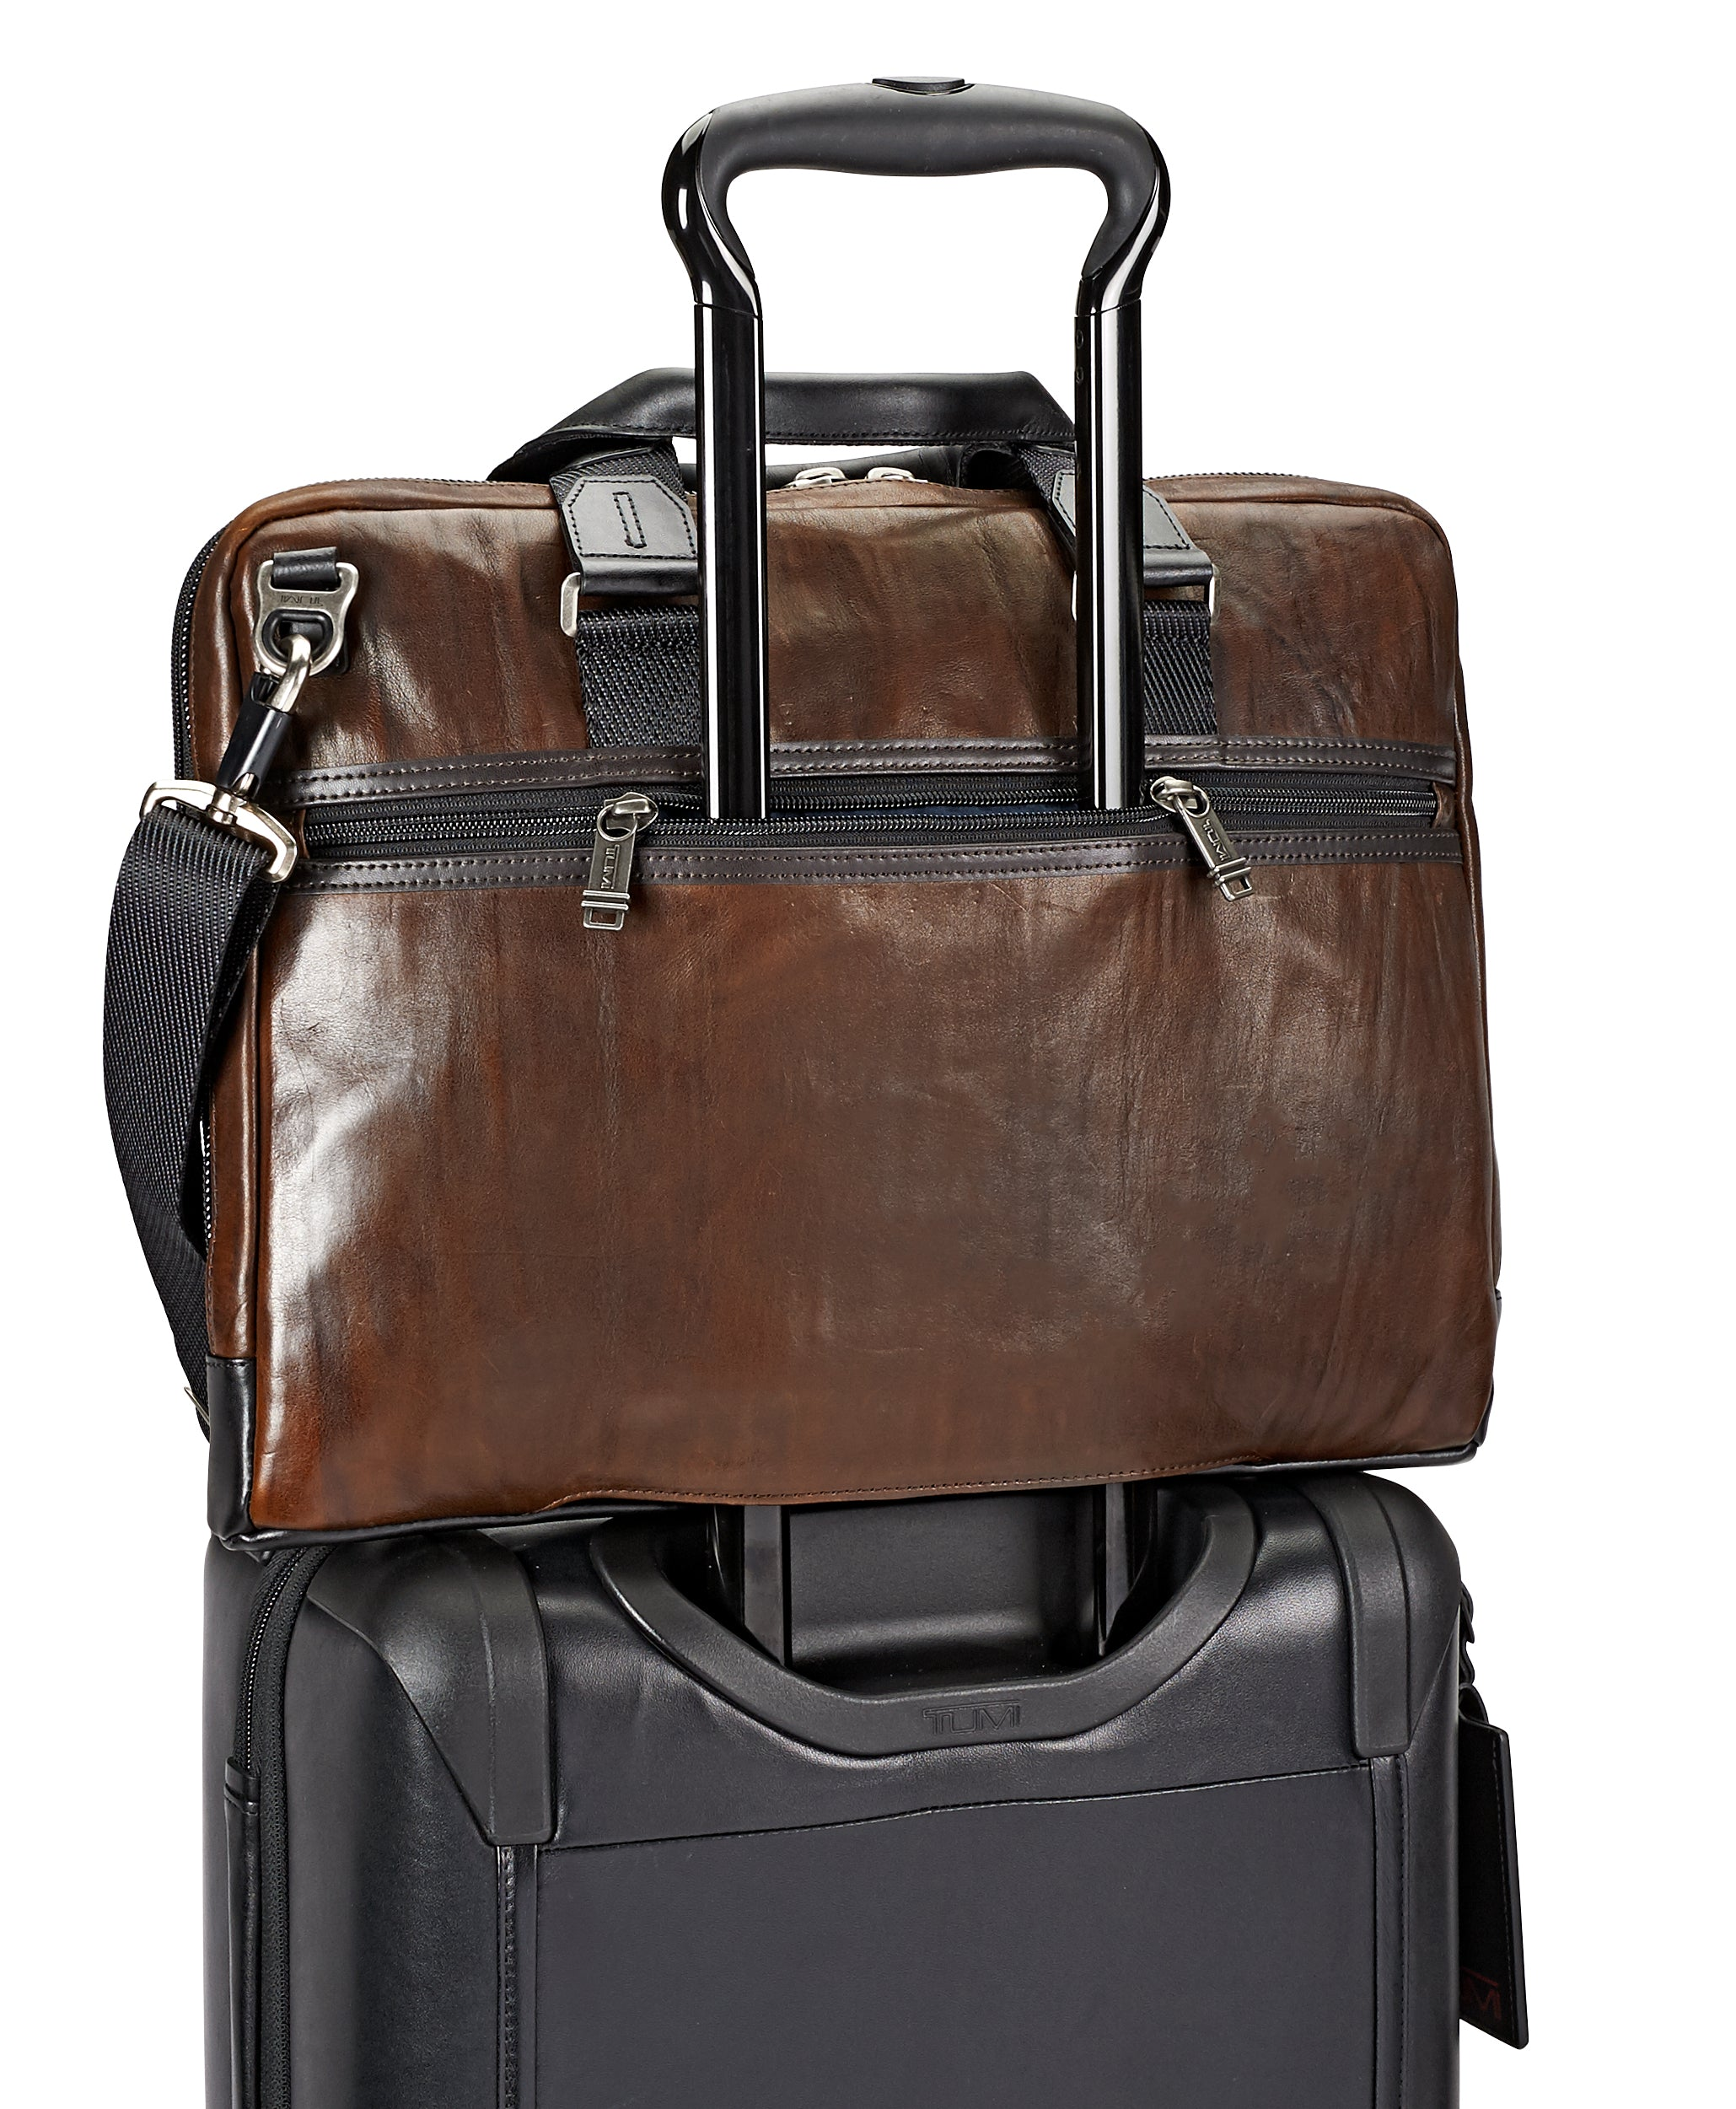 Tumi Alpha Bravo Aviano Slim Leather Brief - Dark Brown | MEGO